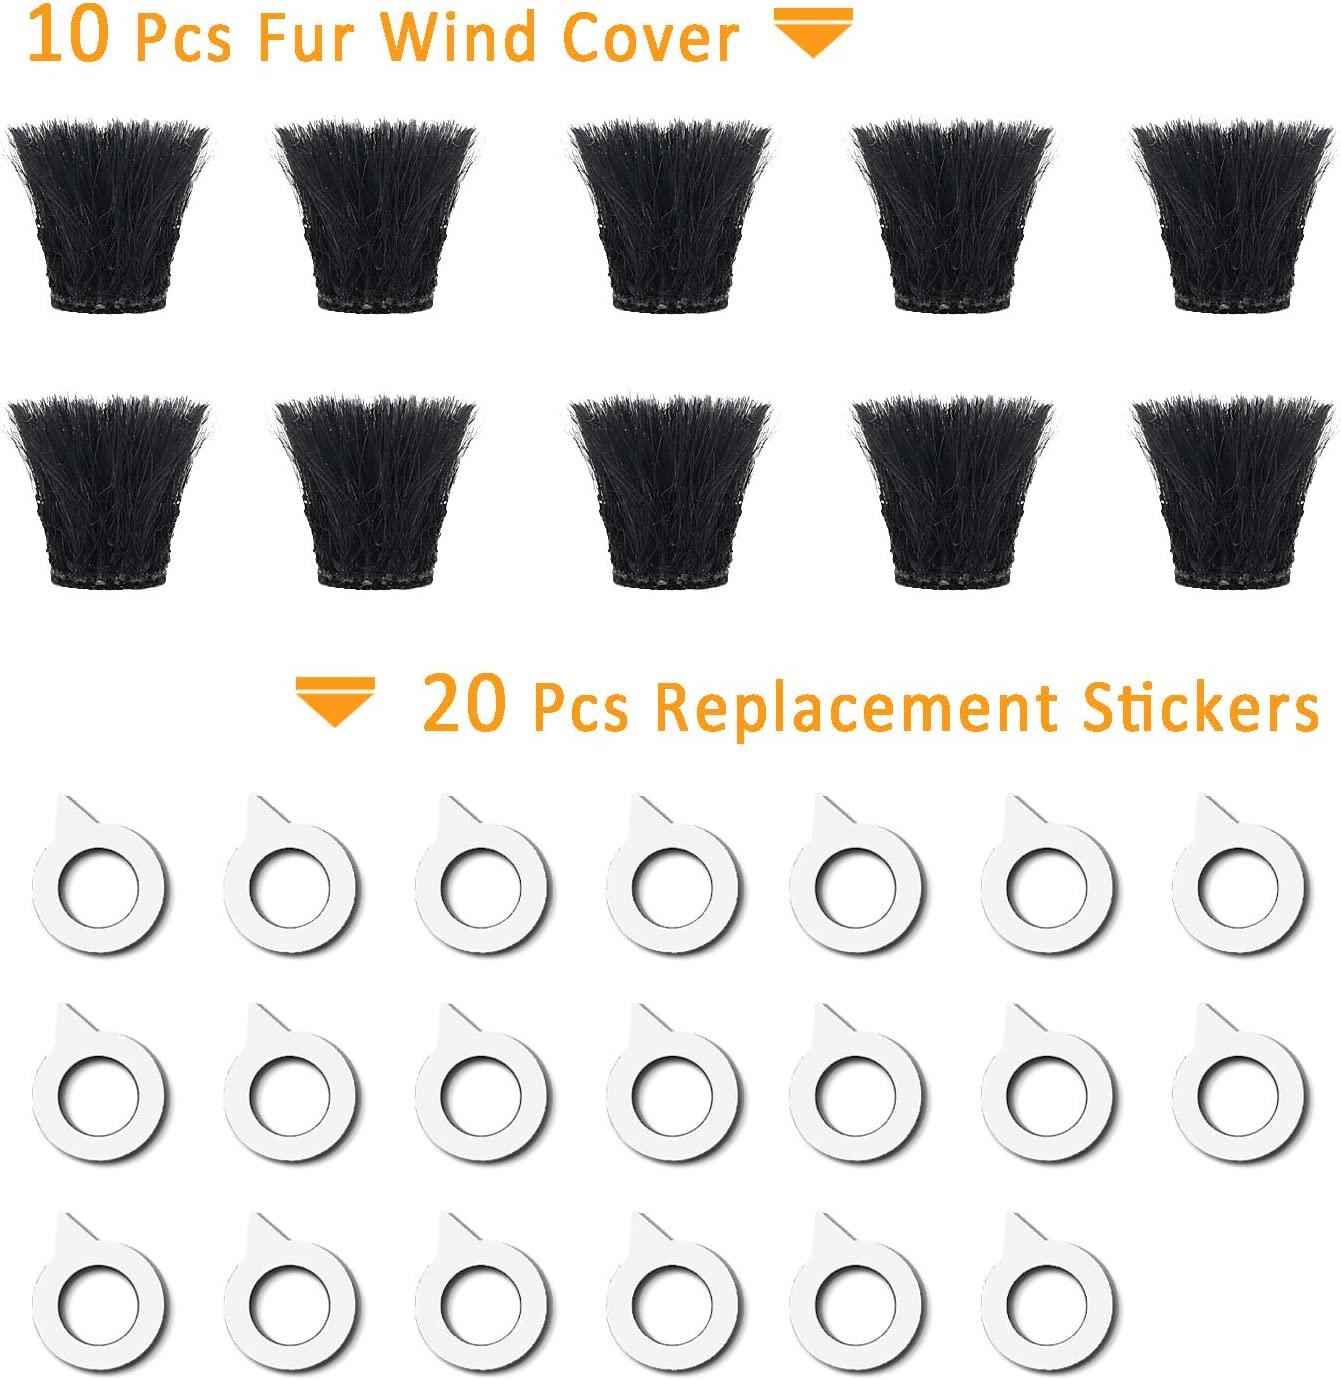 10 Pack Camera Mic Windscreen Windshield Wind Muff for DJI Osmo Action Camera,Sony RX1 RX10 RX100 Digital Compact Cameras Wind Cover by SUNMON